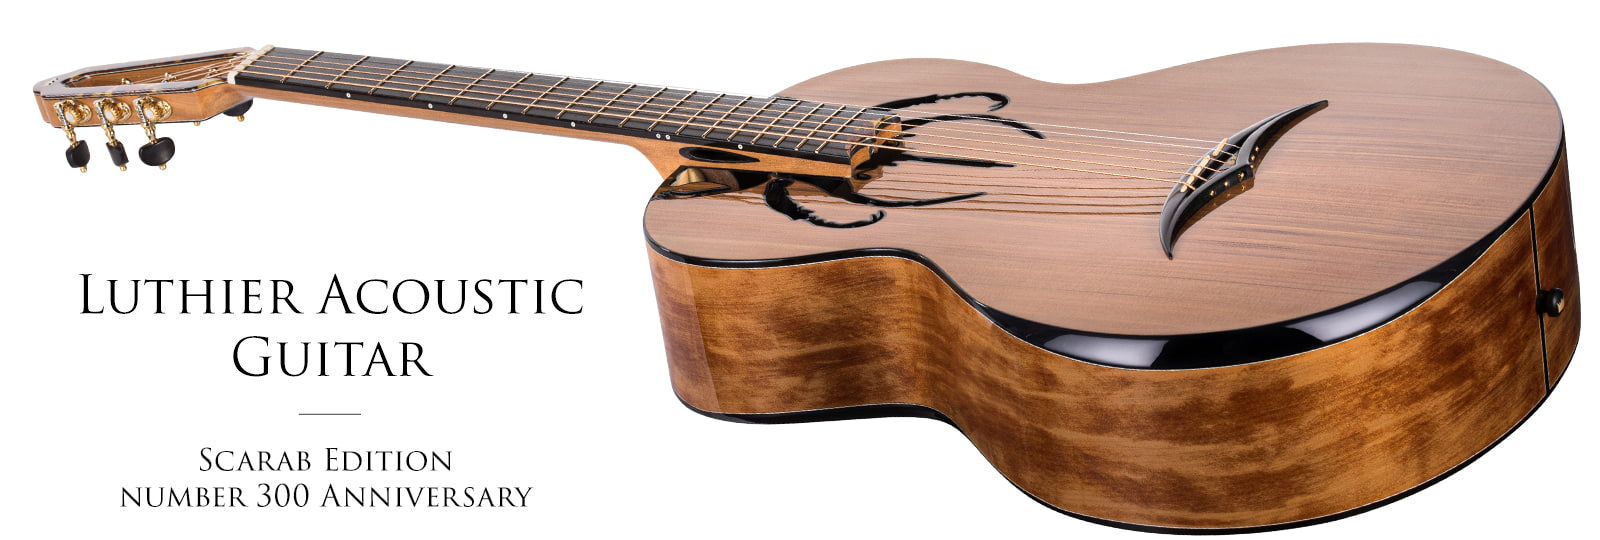 Luthier Acoustic Anniversary Scarab Guitar no 300